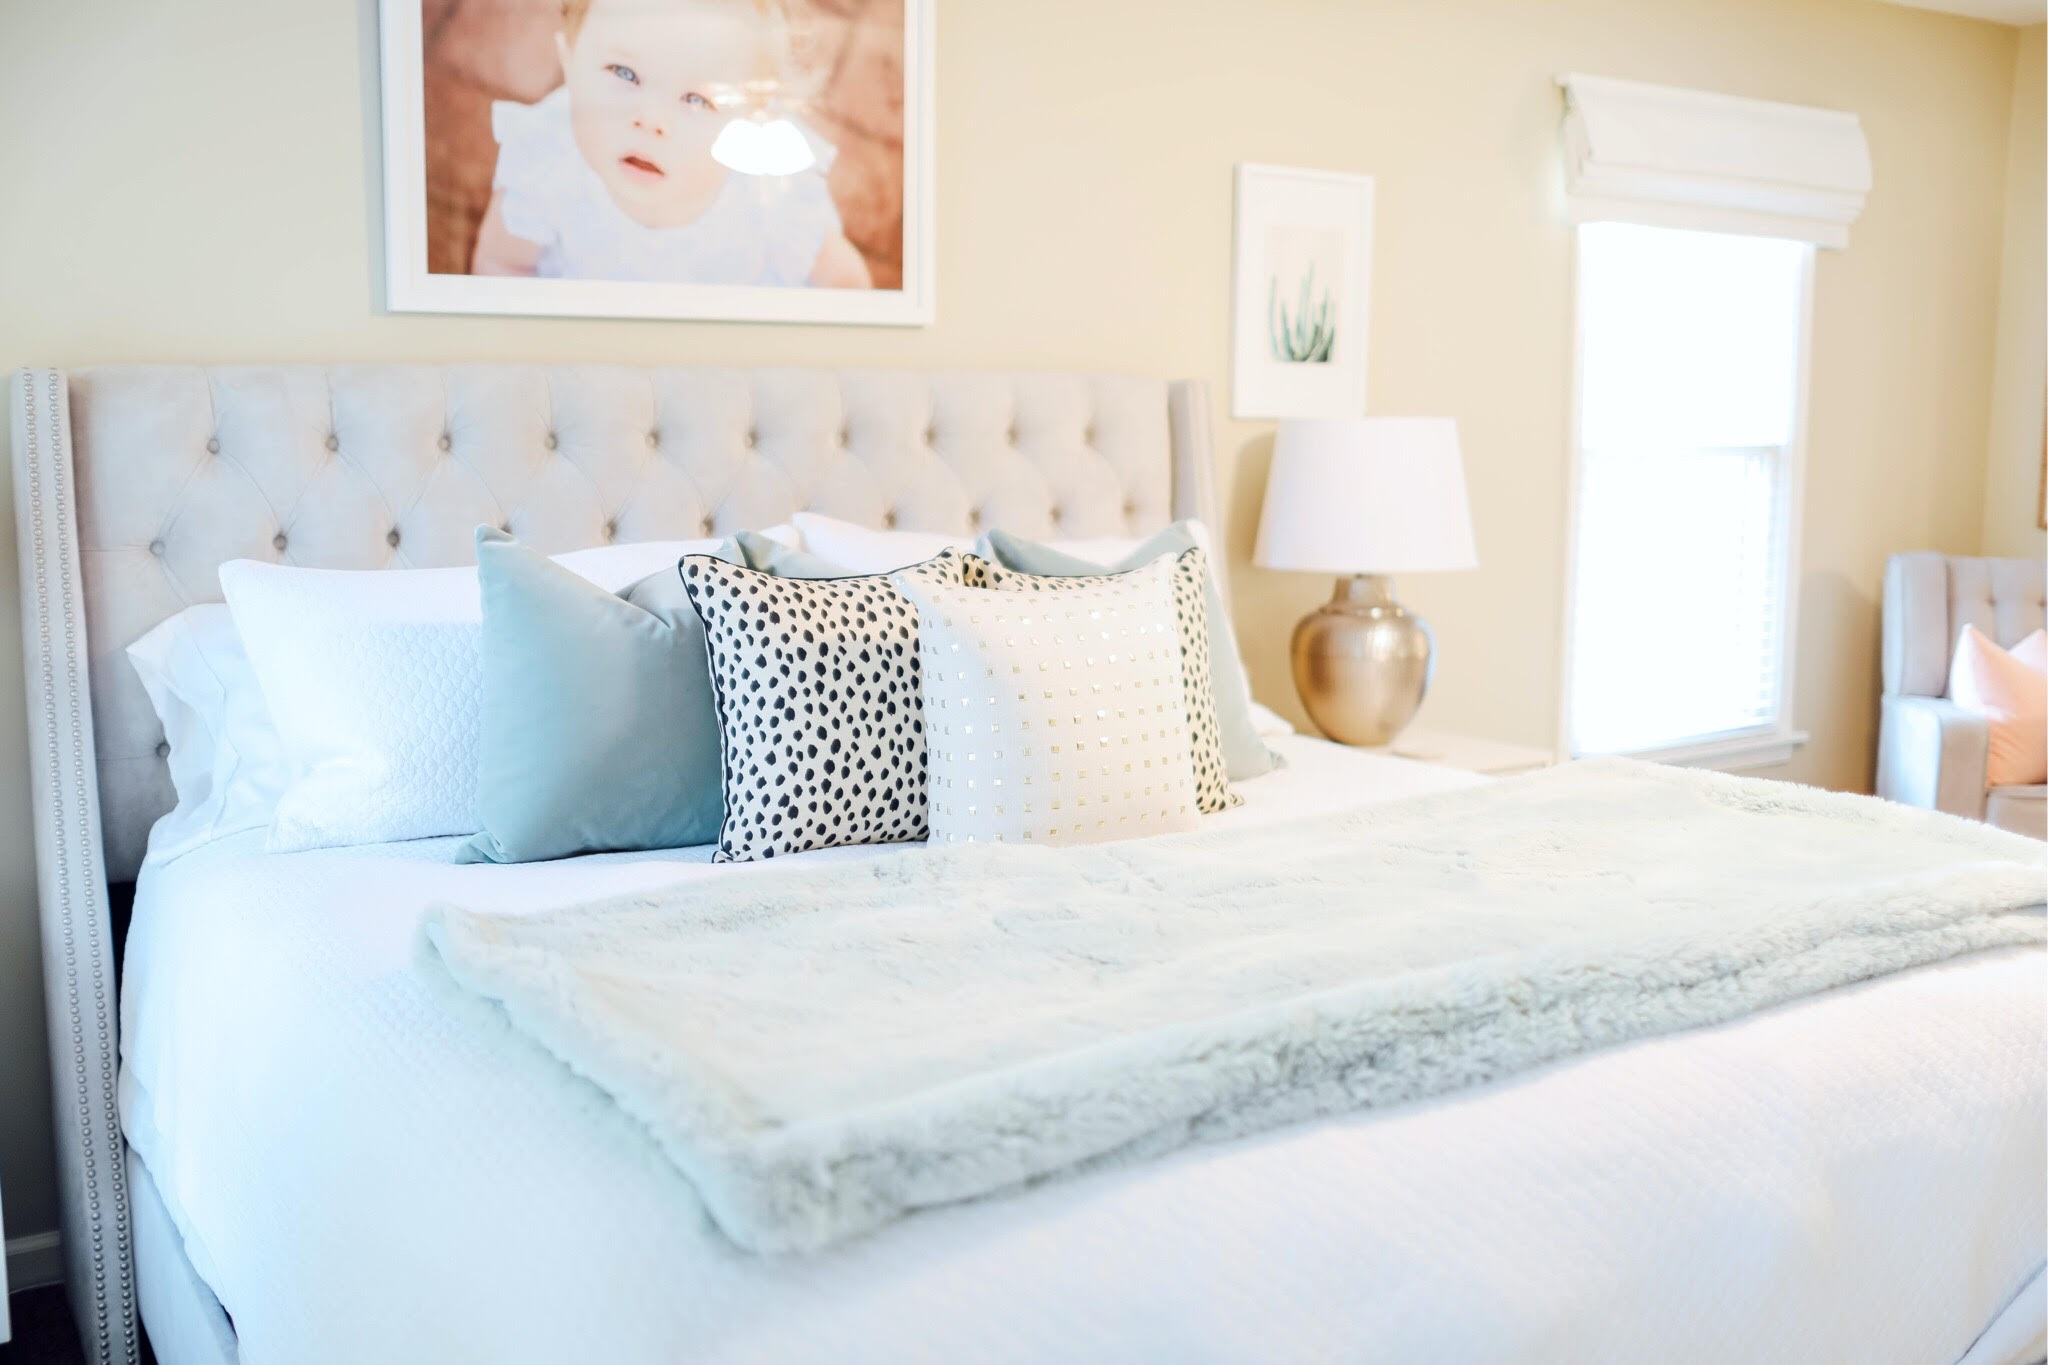 My Master Bedroom Update & Bathroom Update for Summer featured by popular lifestyle blogger Walking in Memphis in High Heels